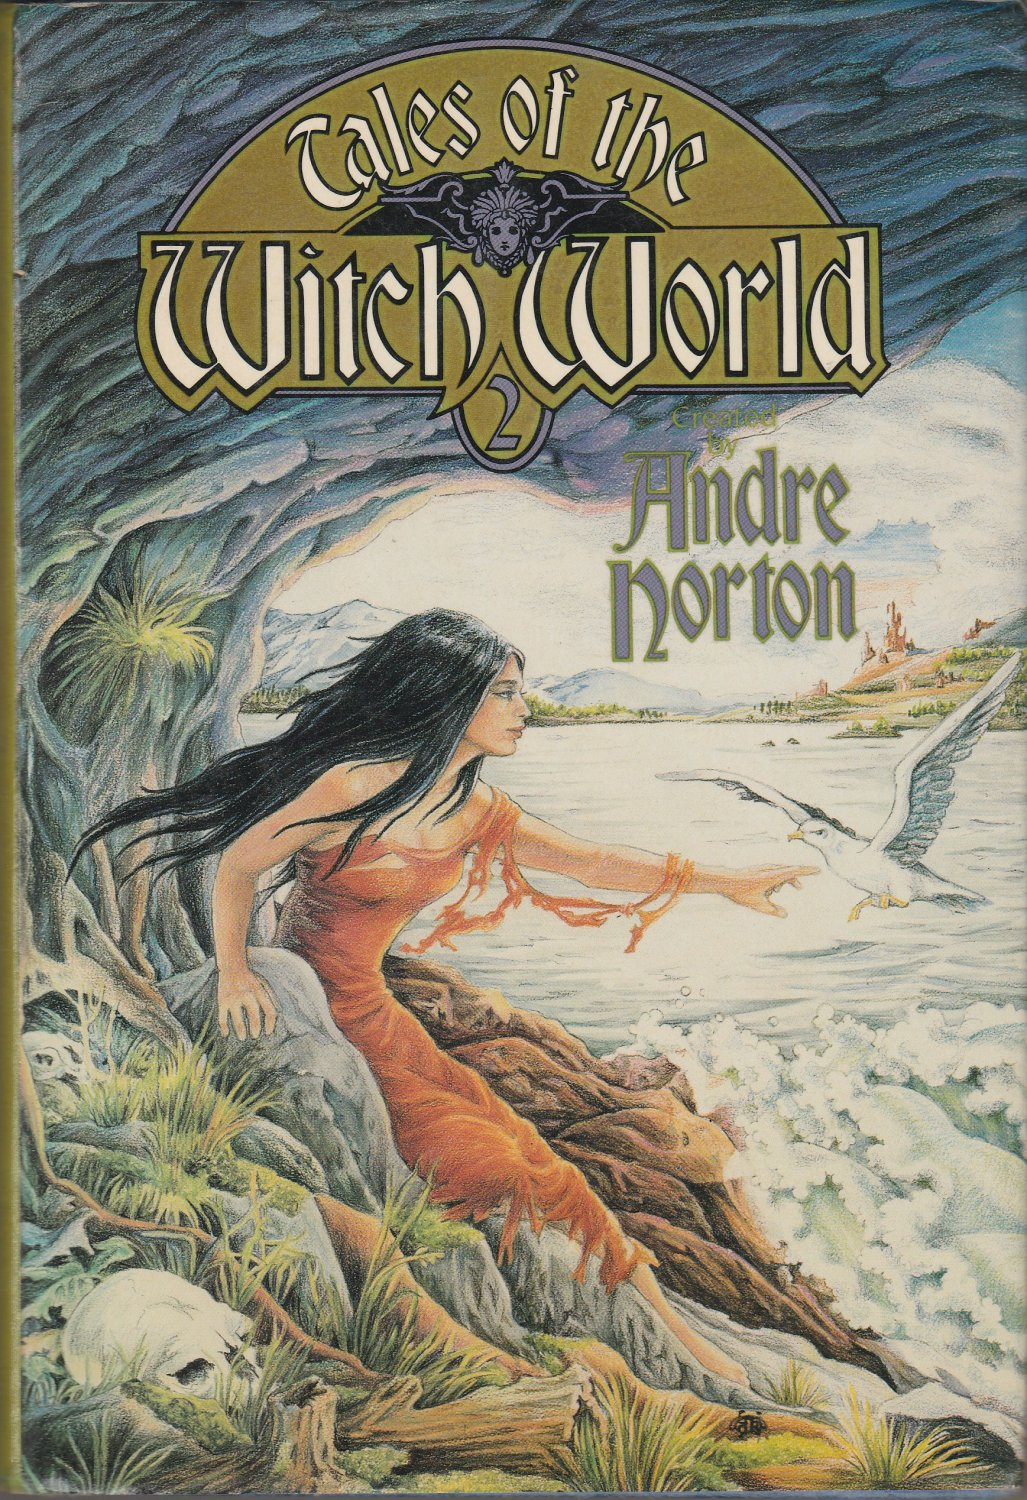 Tales of the Witch World 2 by Andre Norton